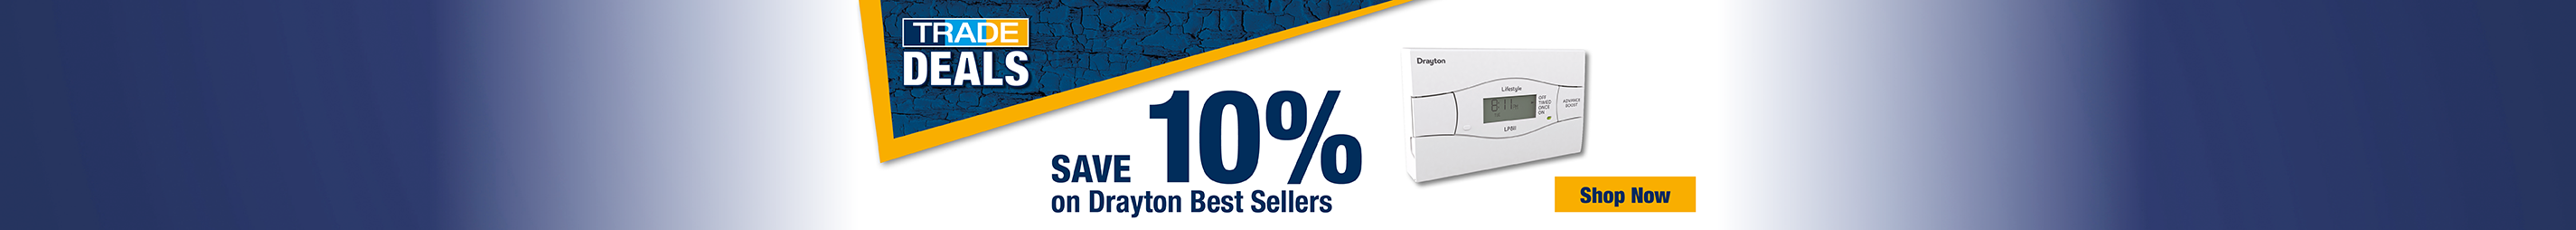 Save 10% on Drayton Best Sellers